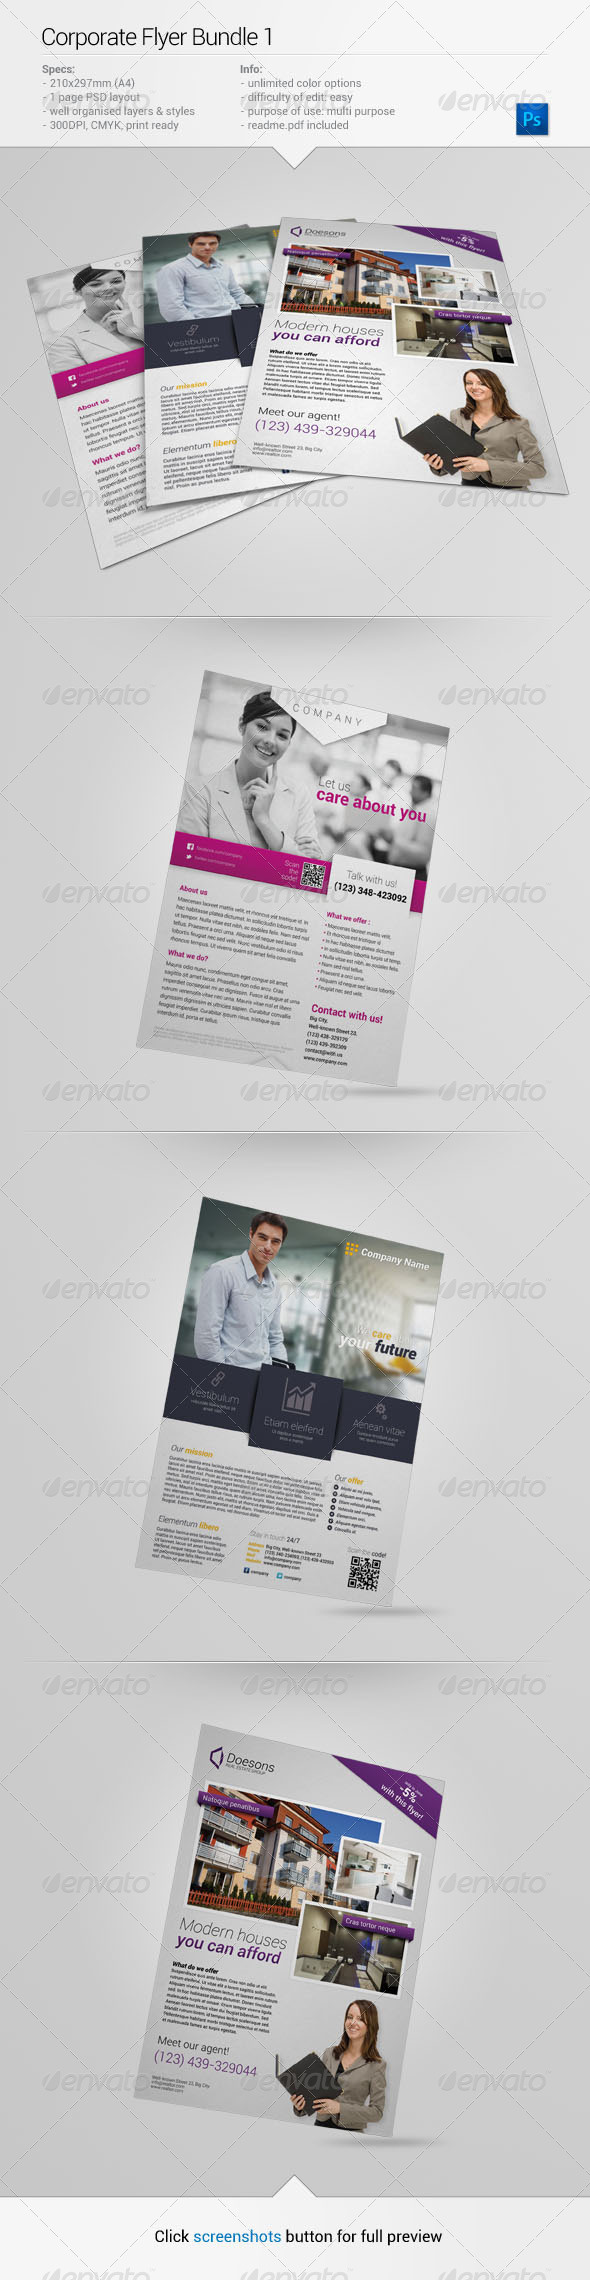 Corporate Flyer Bundle 1 - Corporate Flyers